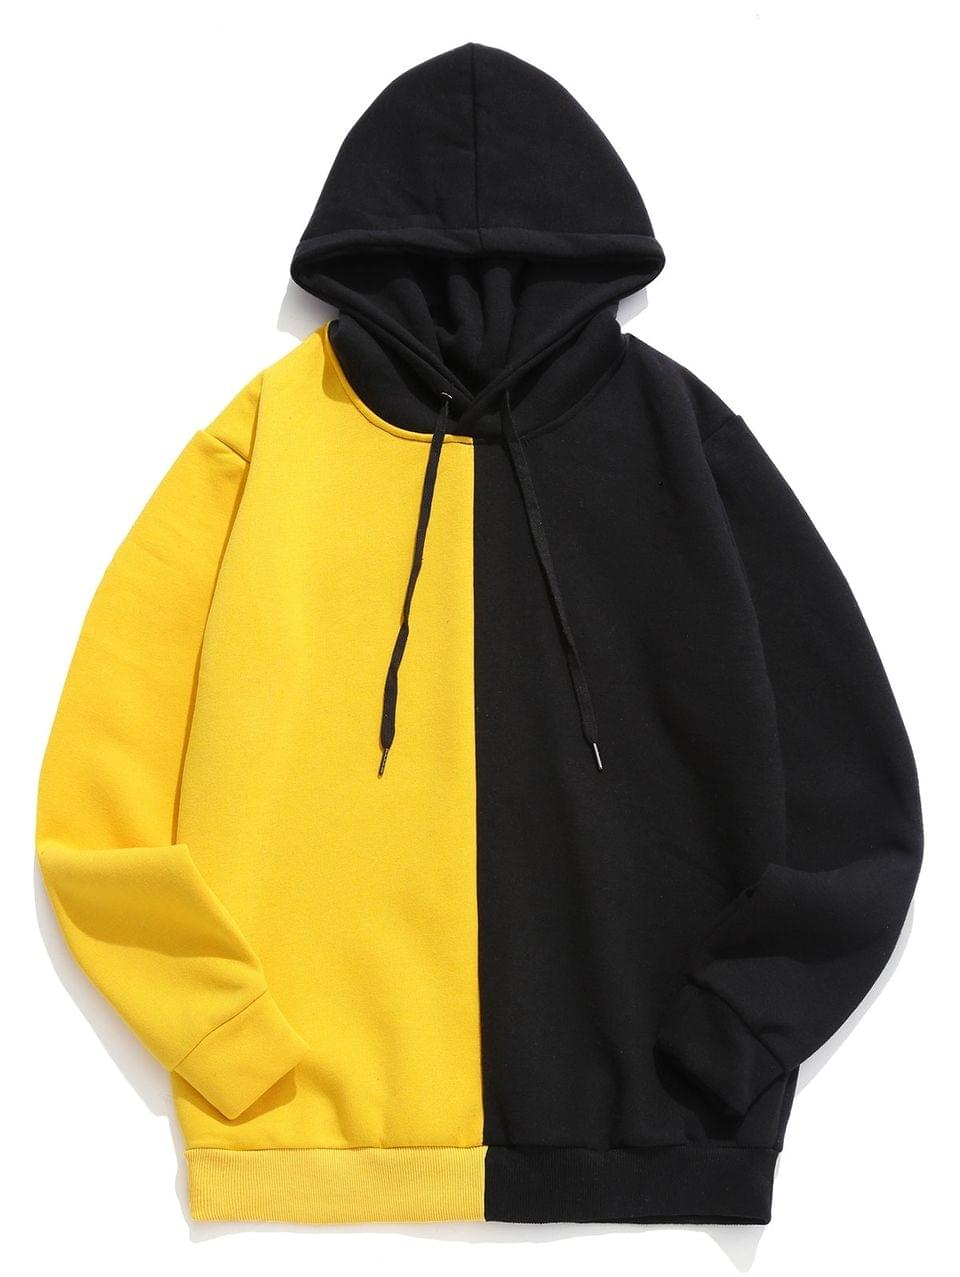 Men's Color-blocking Casual Long-sleeved Hoodie - Yellow S